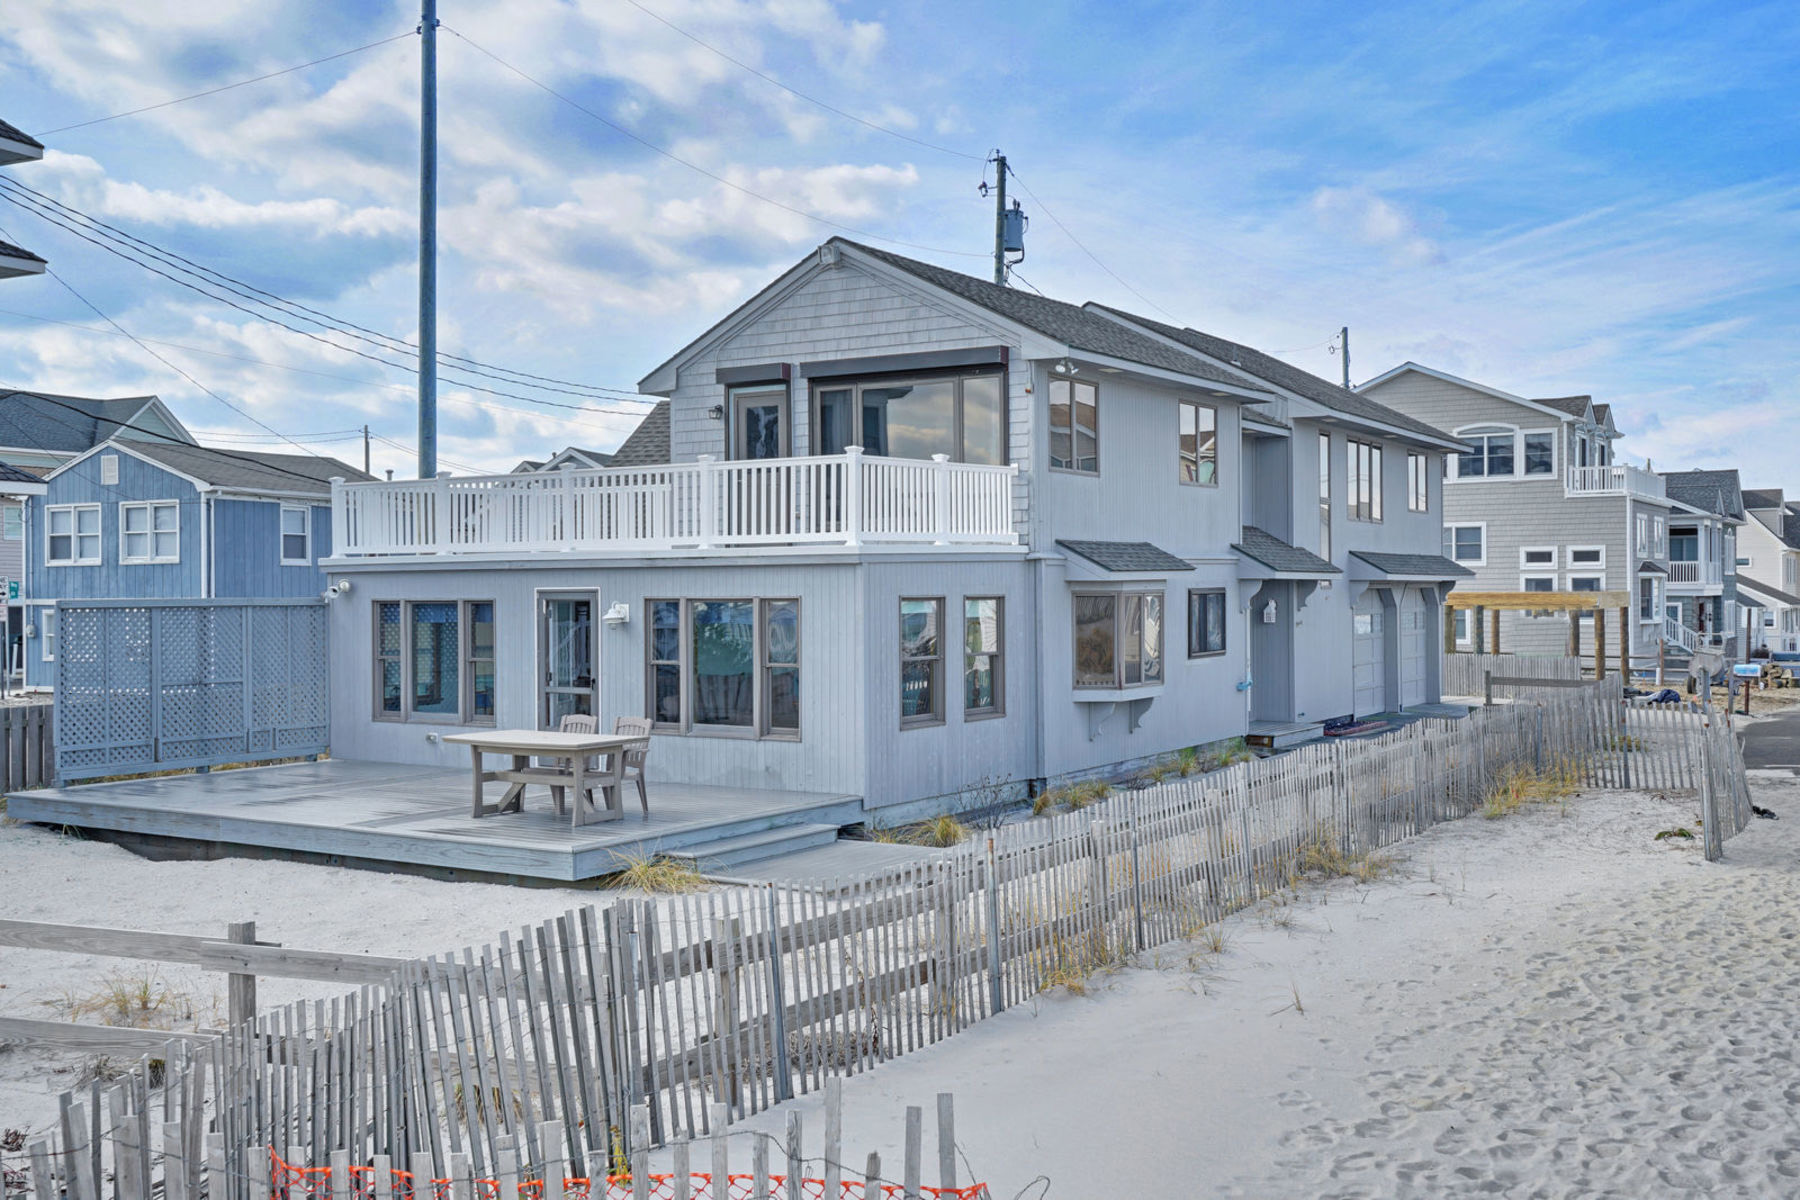 Single Family Home for Sale at Quintessential Oceanfront Custom Built Home 11 S Surf Road, Lavallette, New Jersey 08735 United States